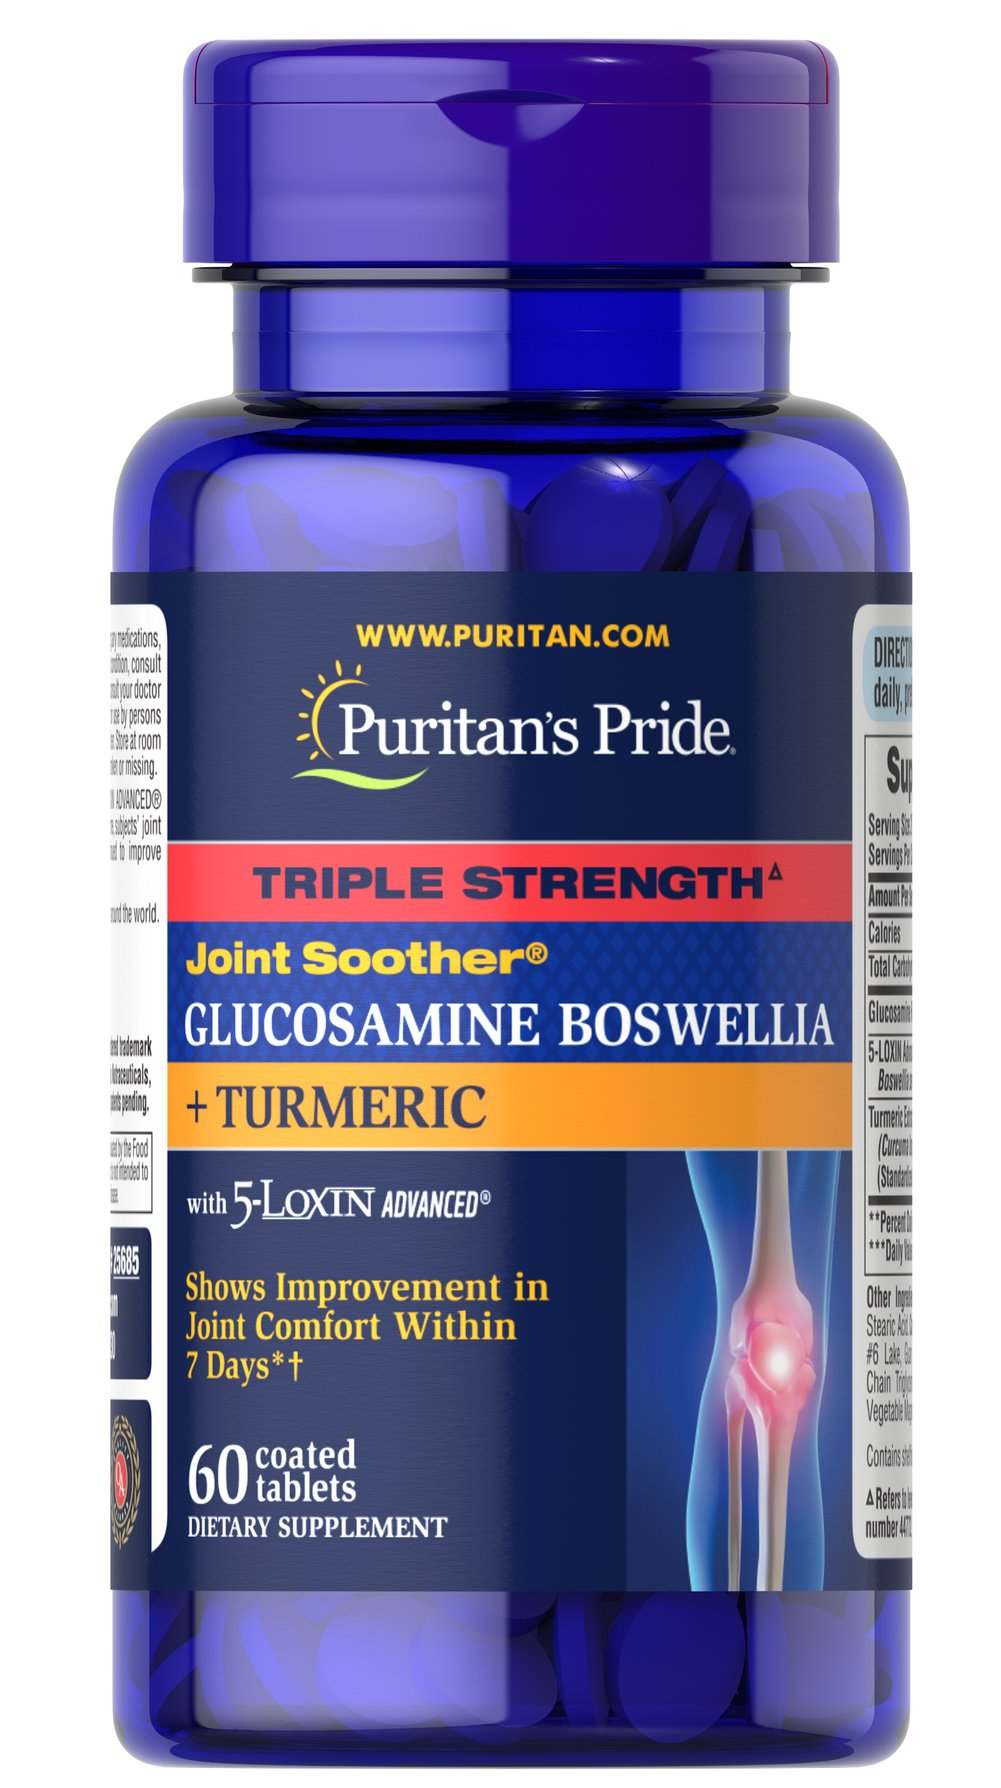 Triple Strength Joint Soother® Glucosamine Boswellia + Turmeric